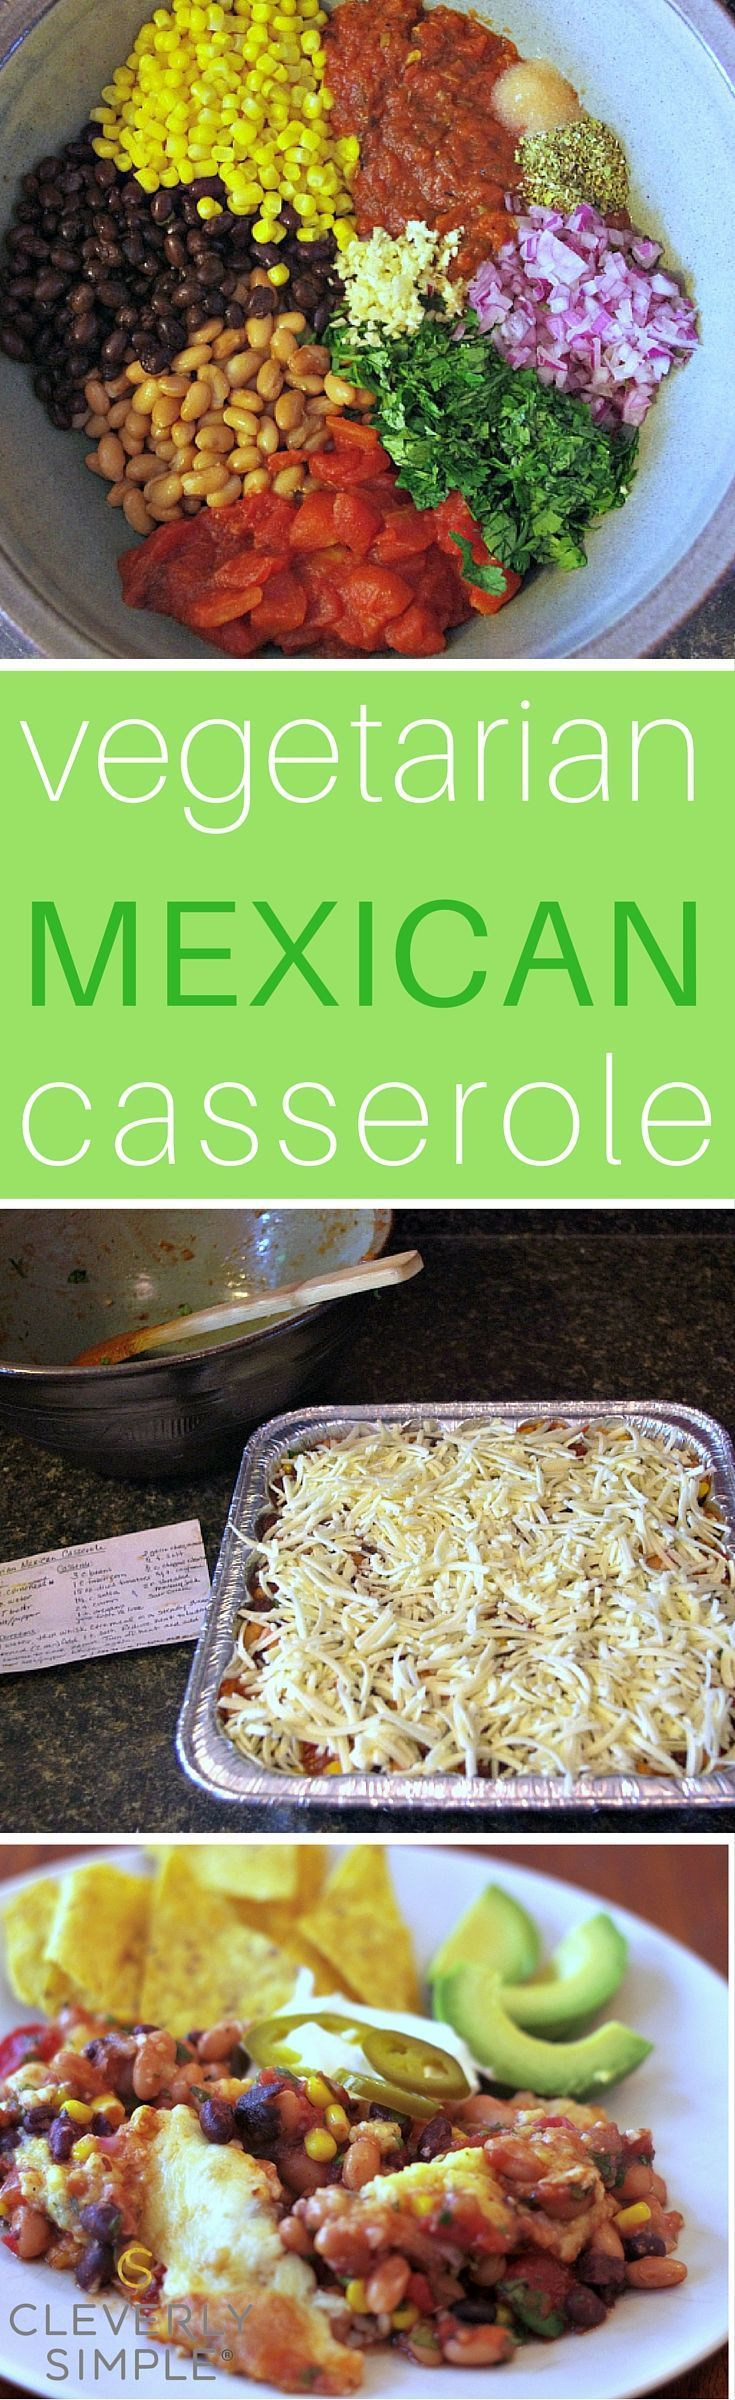 Best 25 vegetarian mexican food ideas on pinterest vegetarian easy vegetarian mexican casserole that is healthy for your whole family forumfinder Gallery